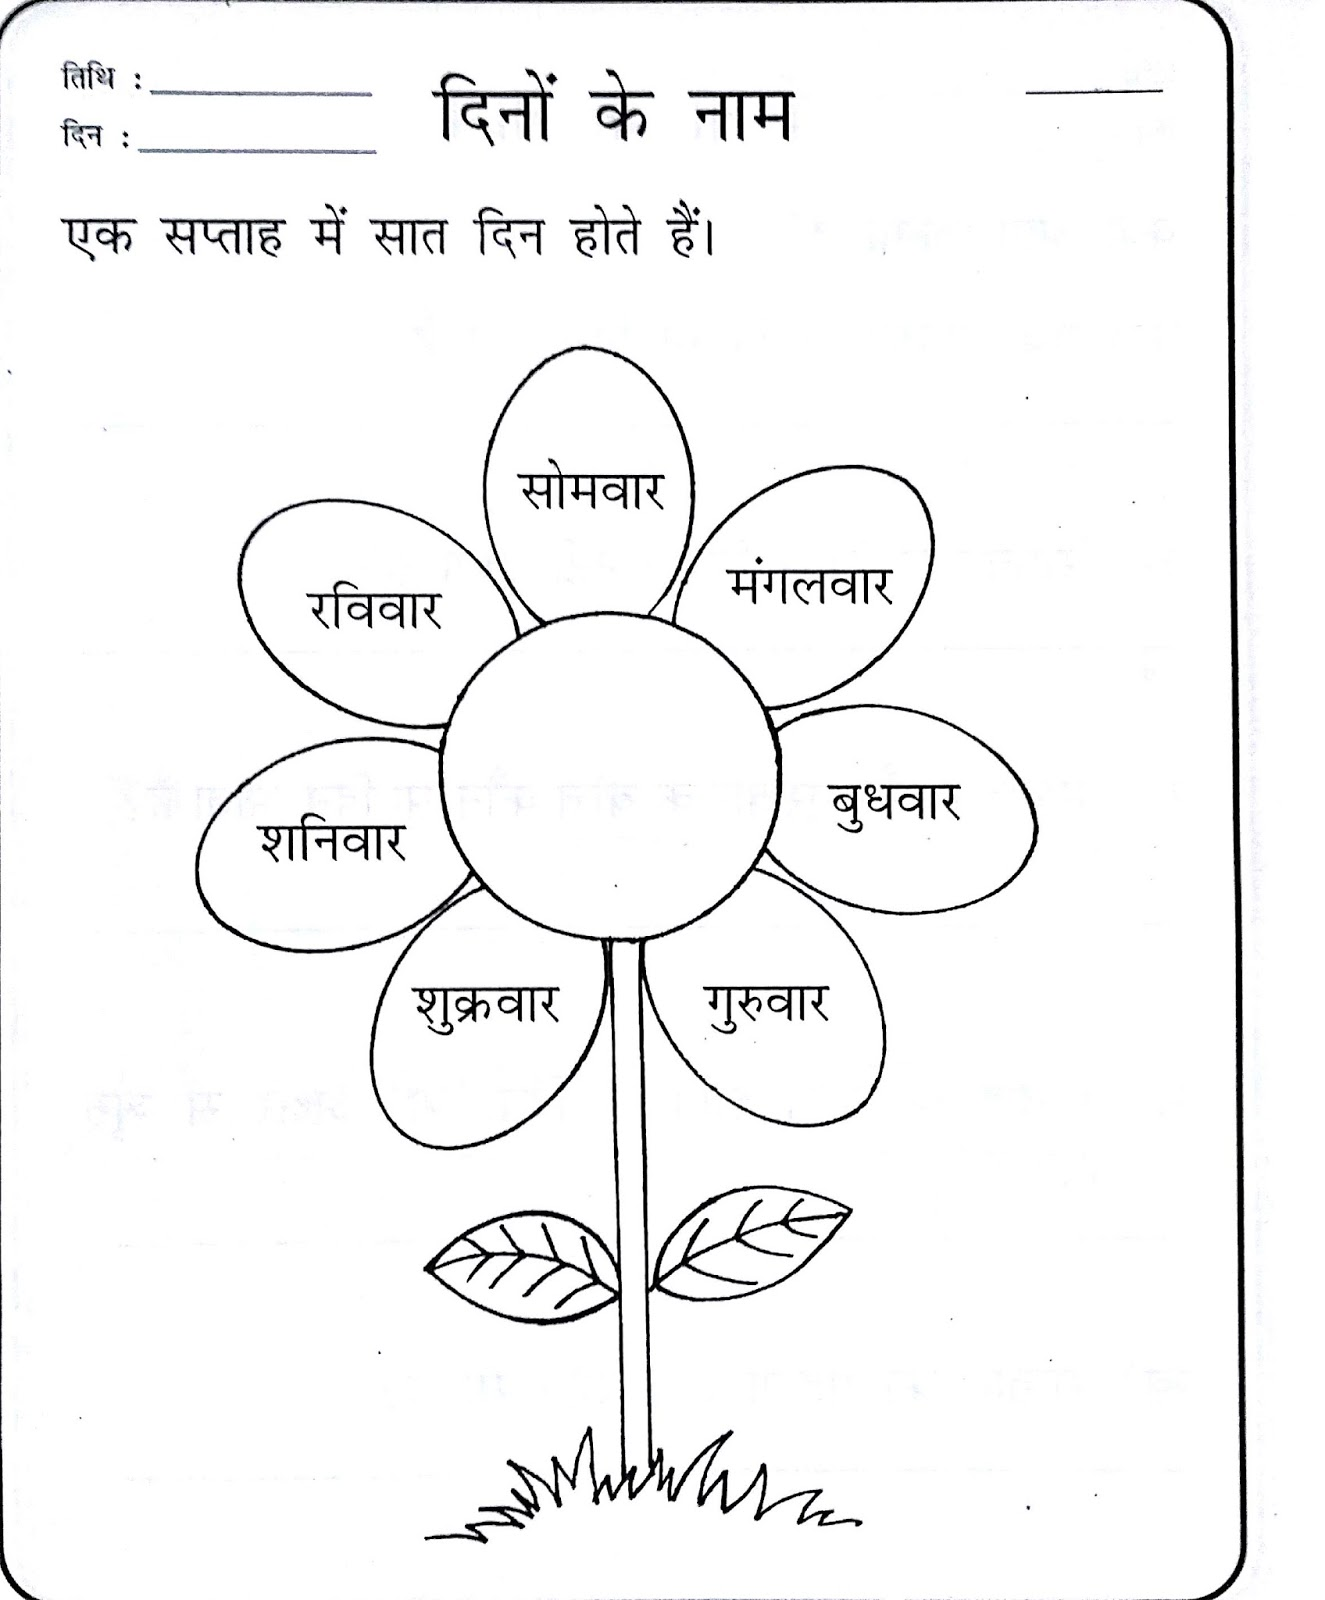 small resolution of Hindi Worksheets Grade 1   Printable Worksheets and Activities for  Teachers